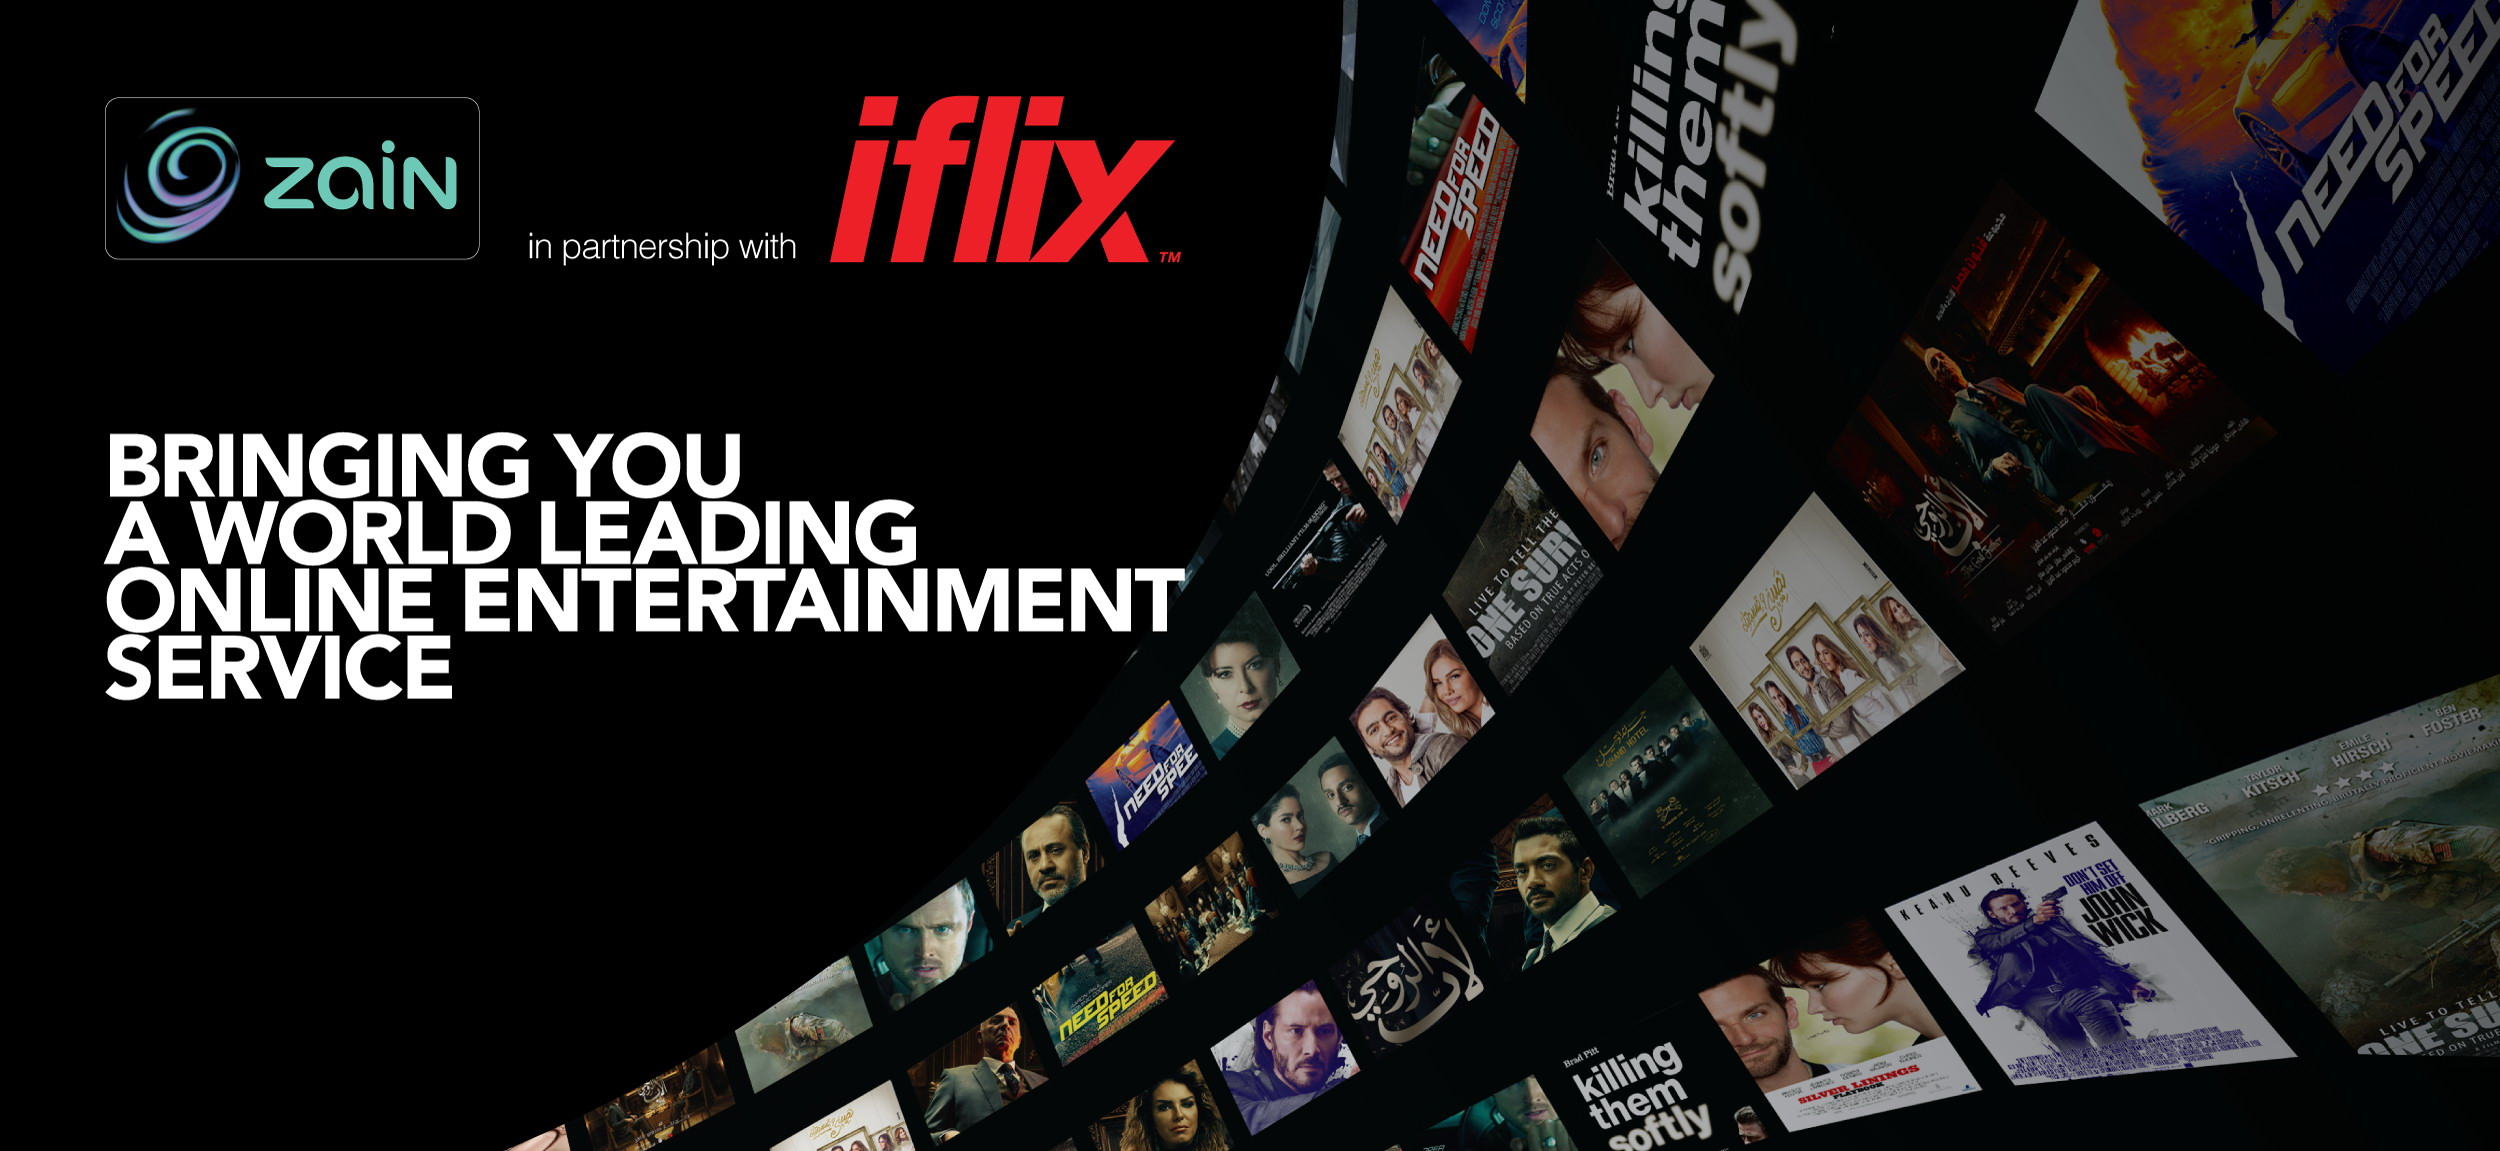 INWI TÉLÉCHARGER IFLIX